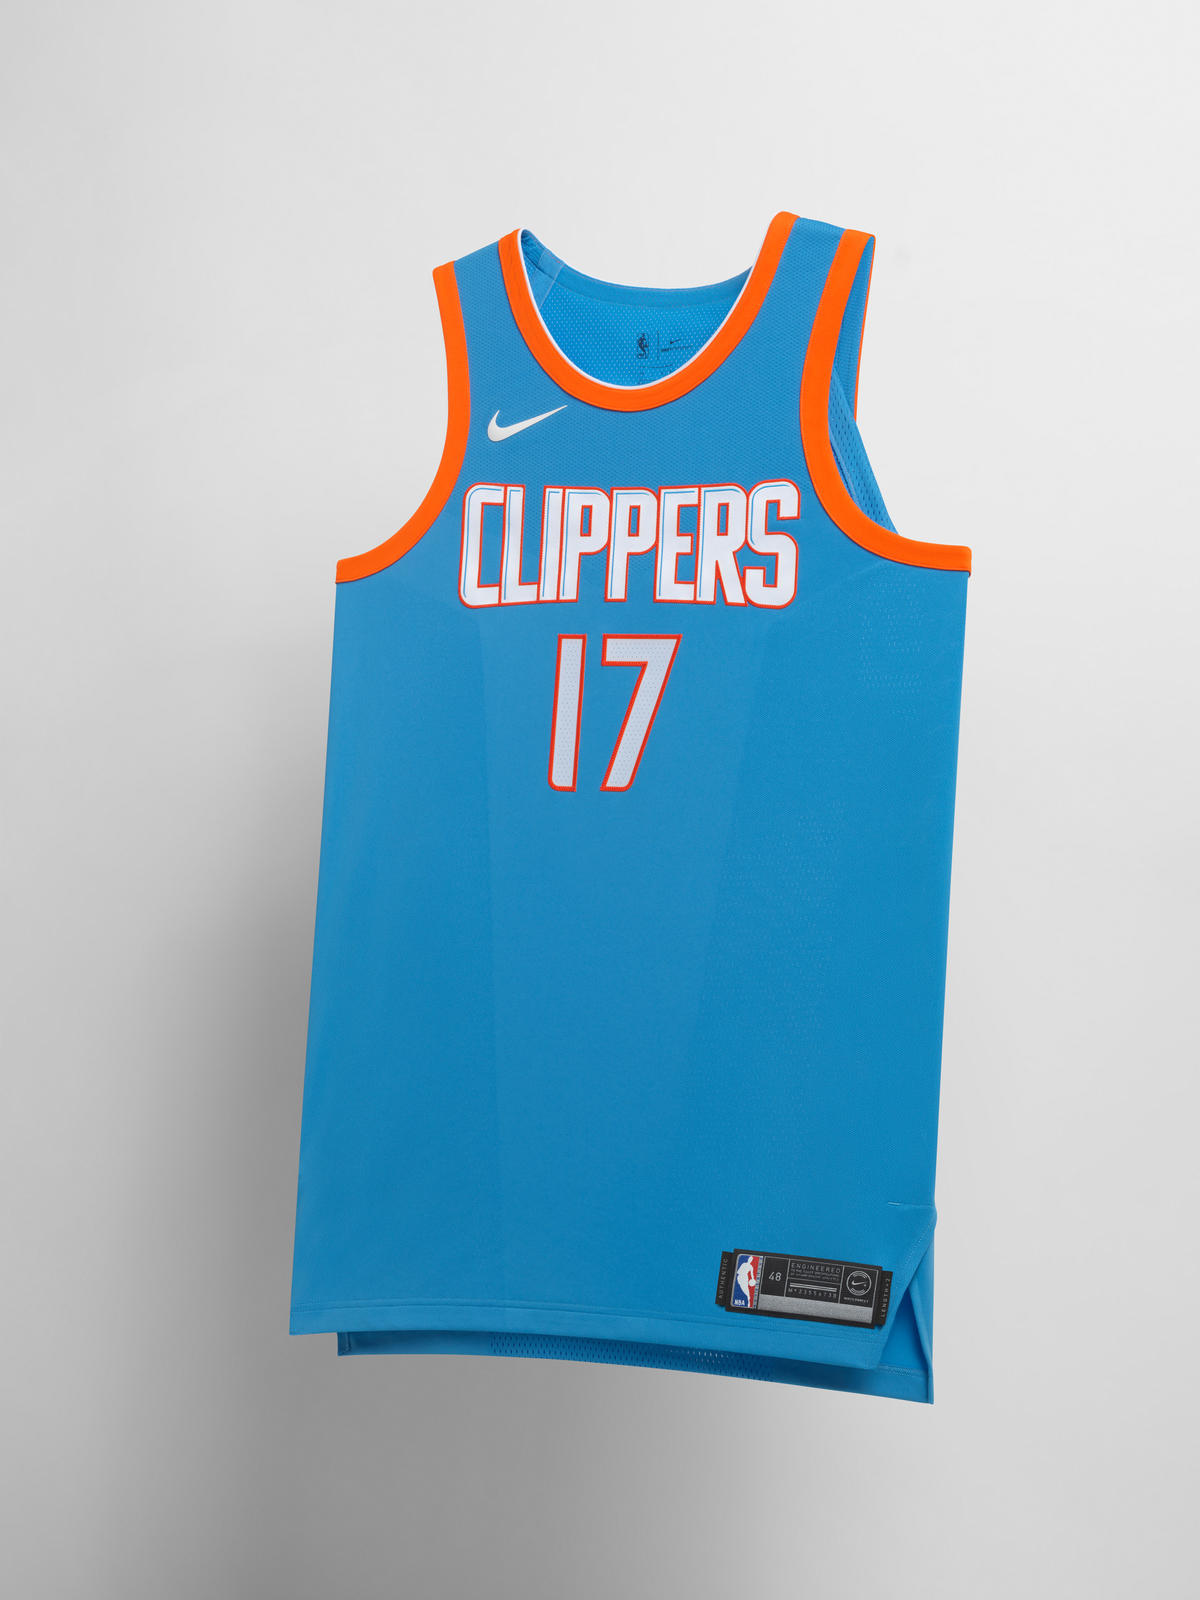 los-angeles-clippers-city-edition-jersey.jpeg